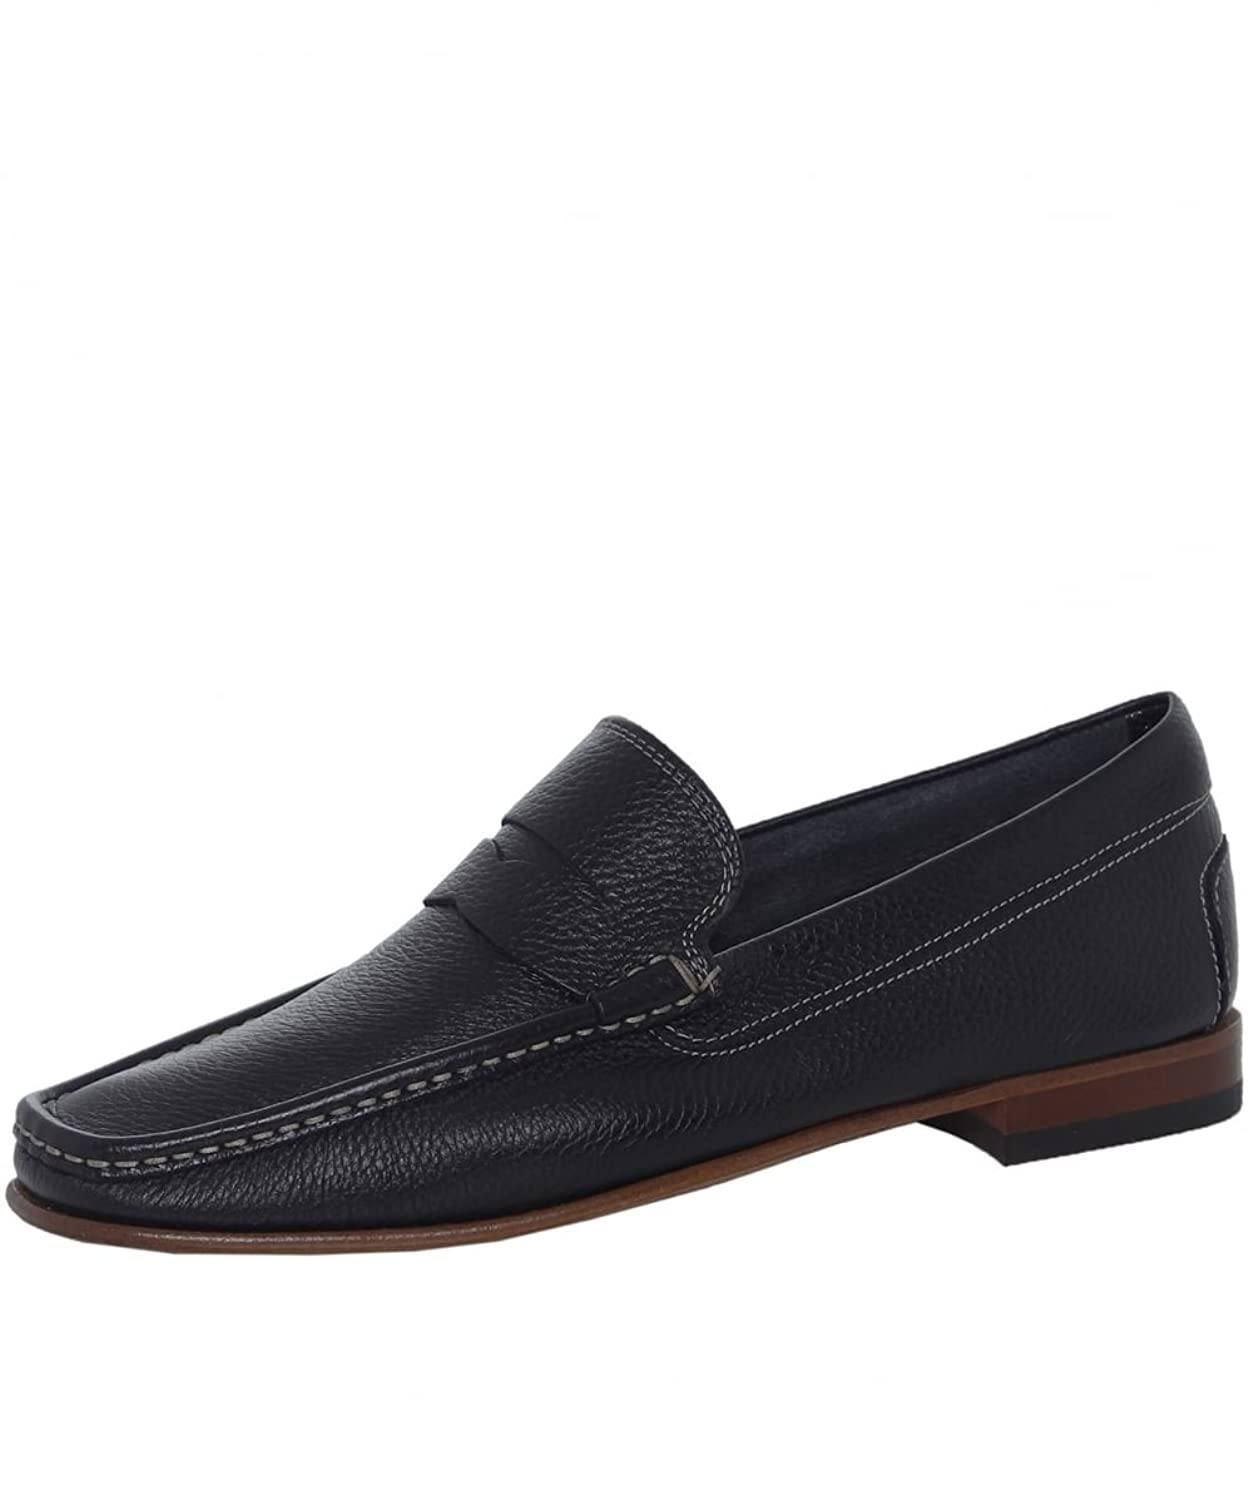 Joss Men's Tumbled Leather Penny Loafers Black